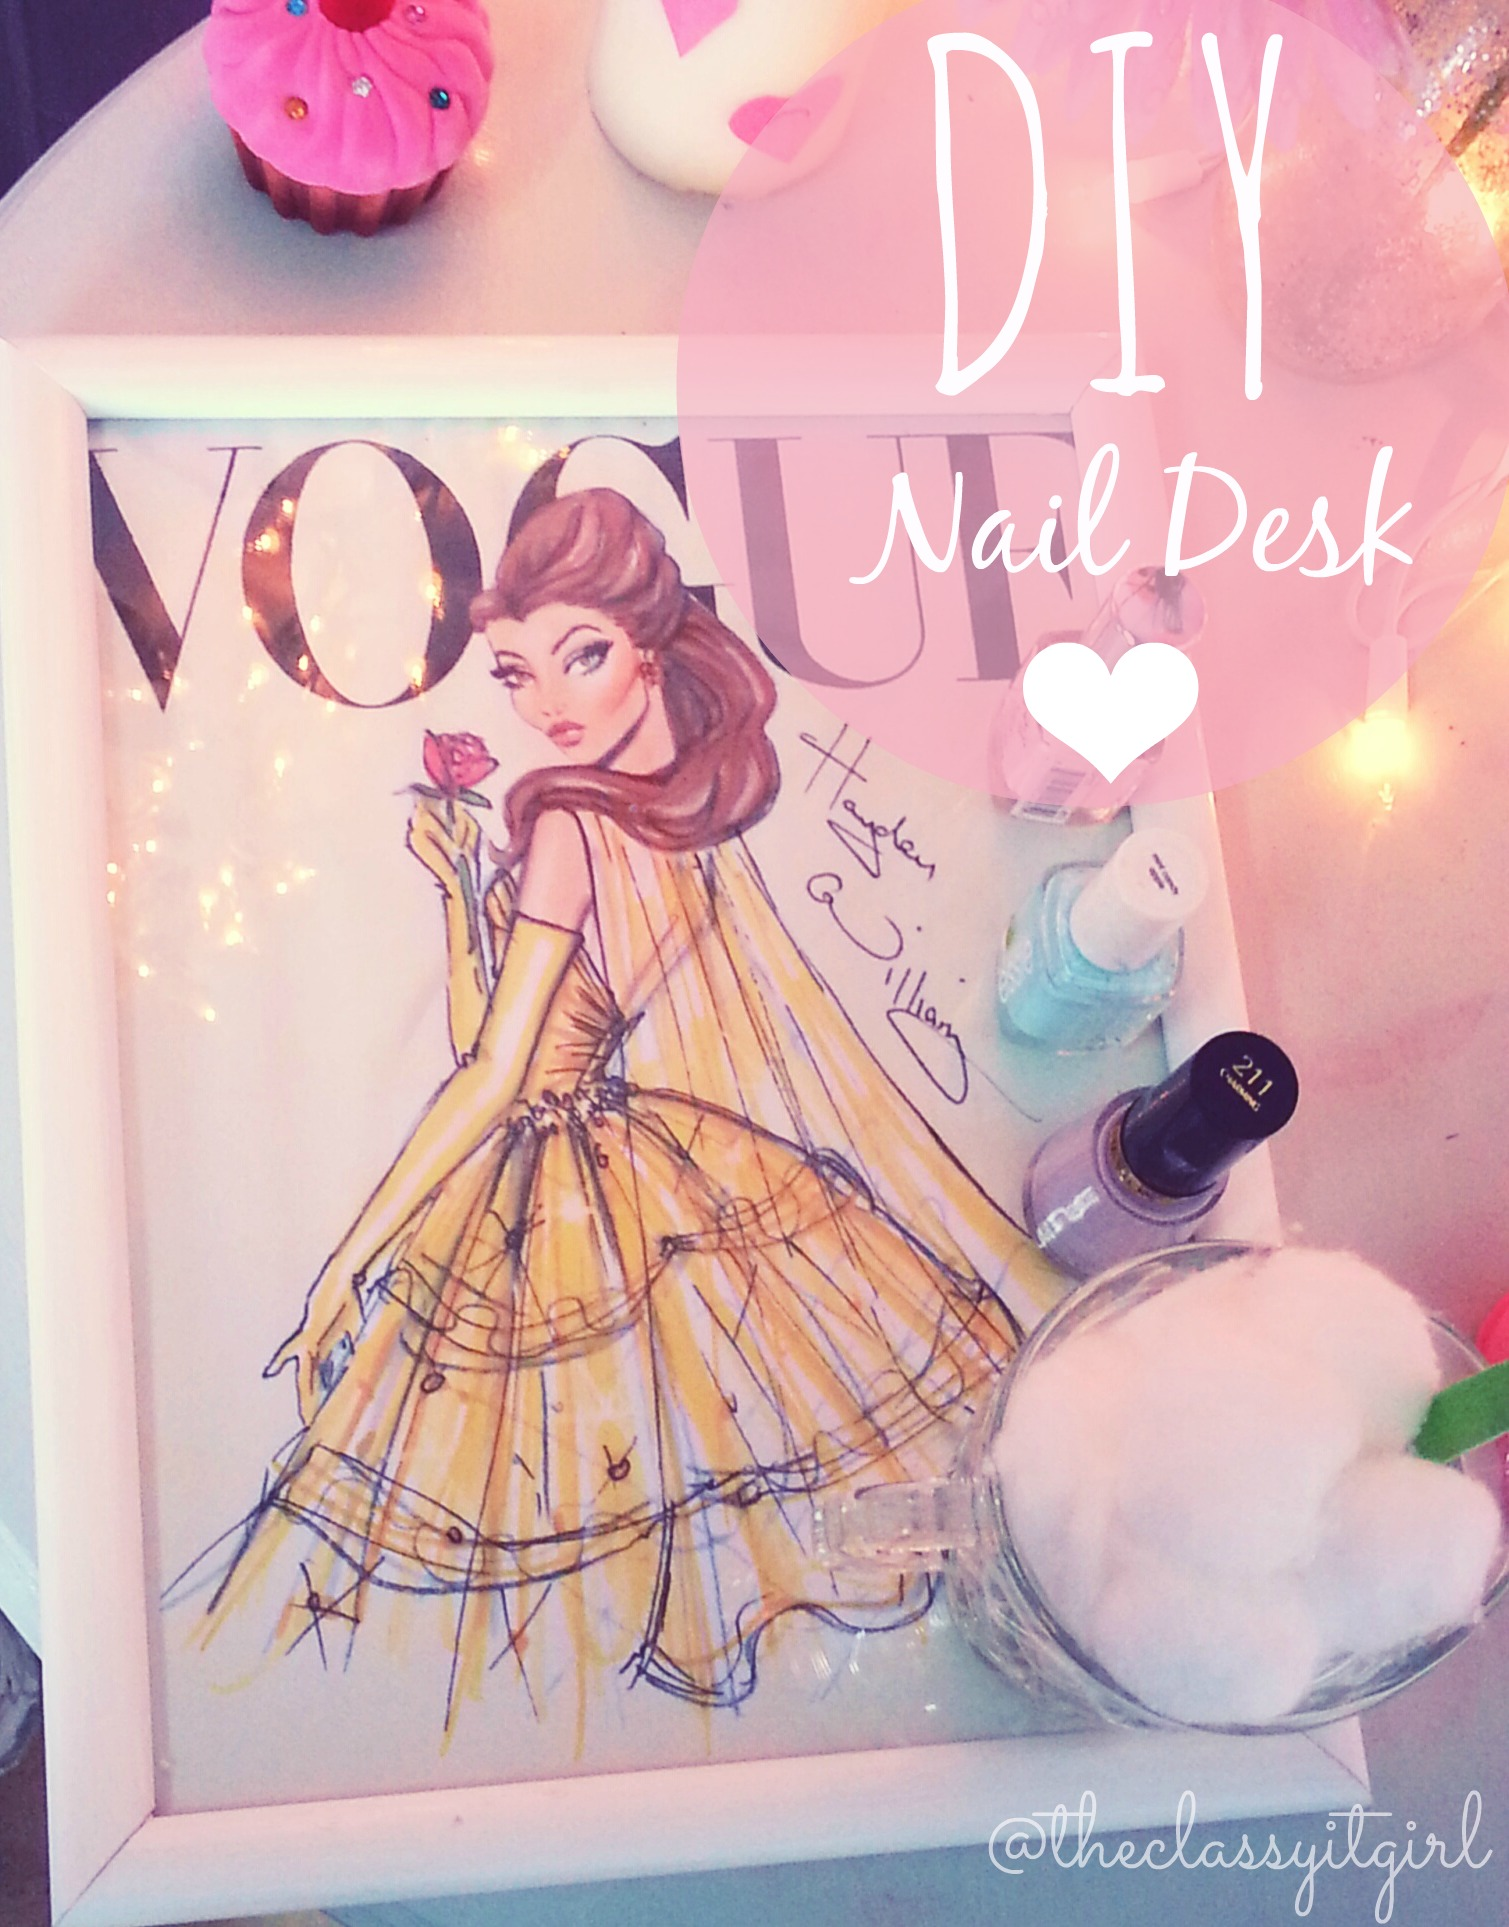 Diy Nail Desk Diy Nail Desk The Classy It Girl